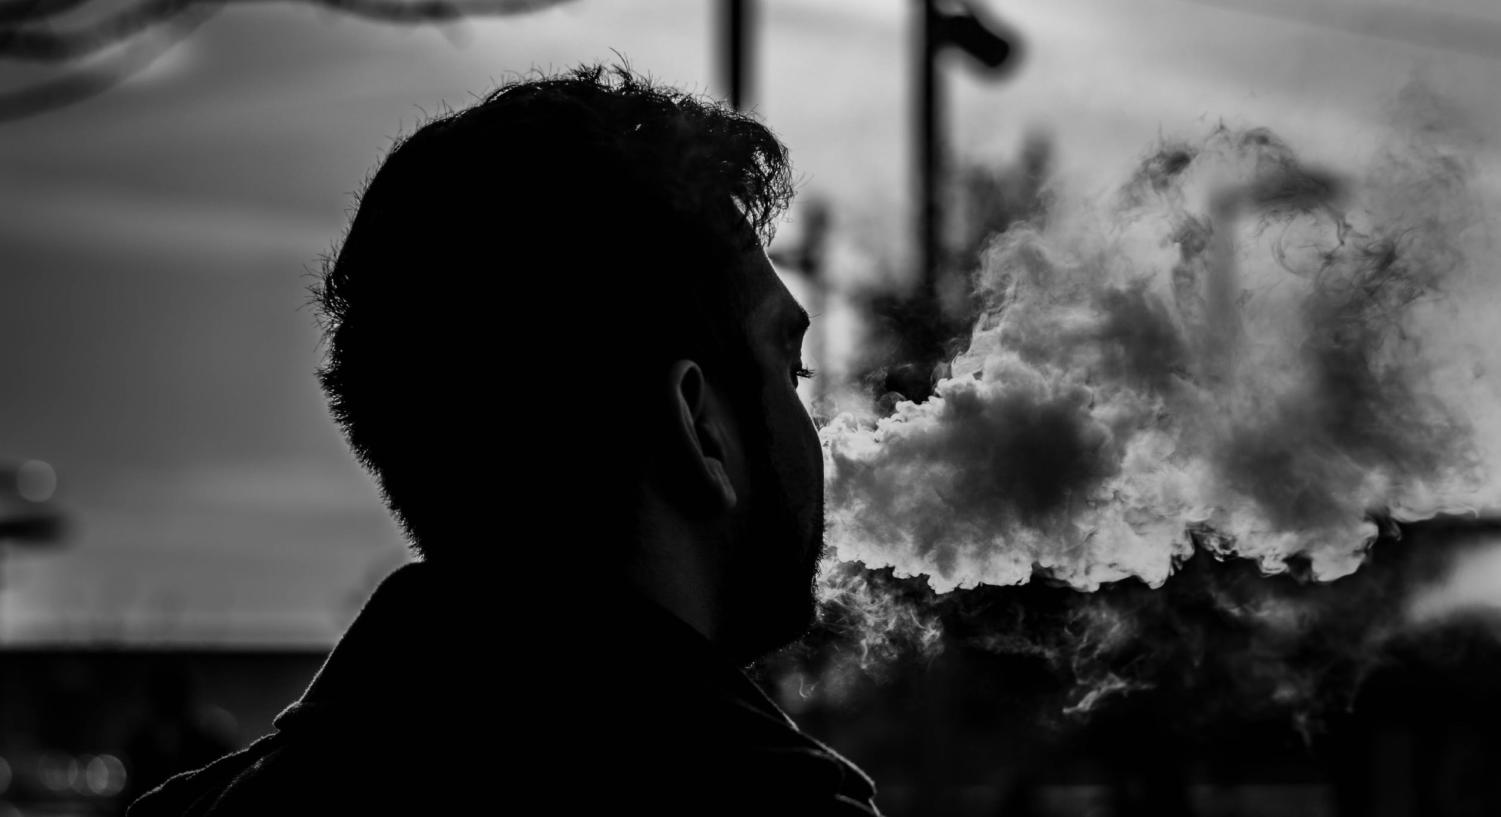 Vaping Illness Among New Yorkers Increases To 60 cases